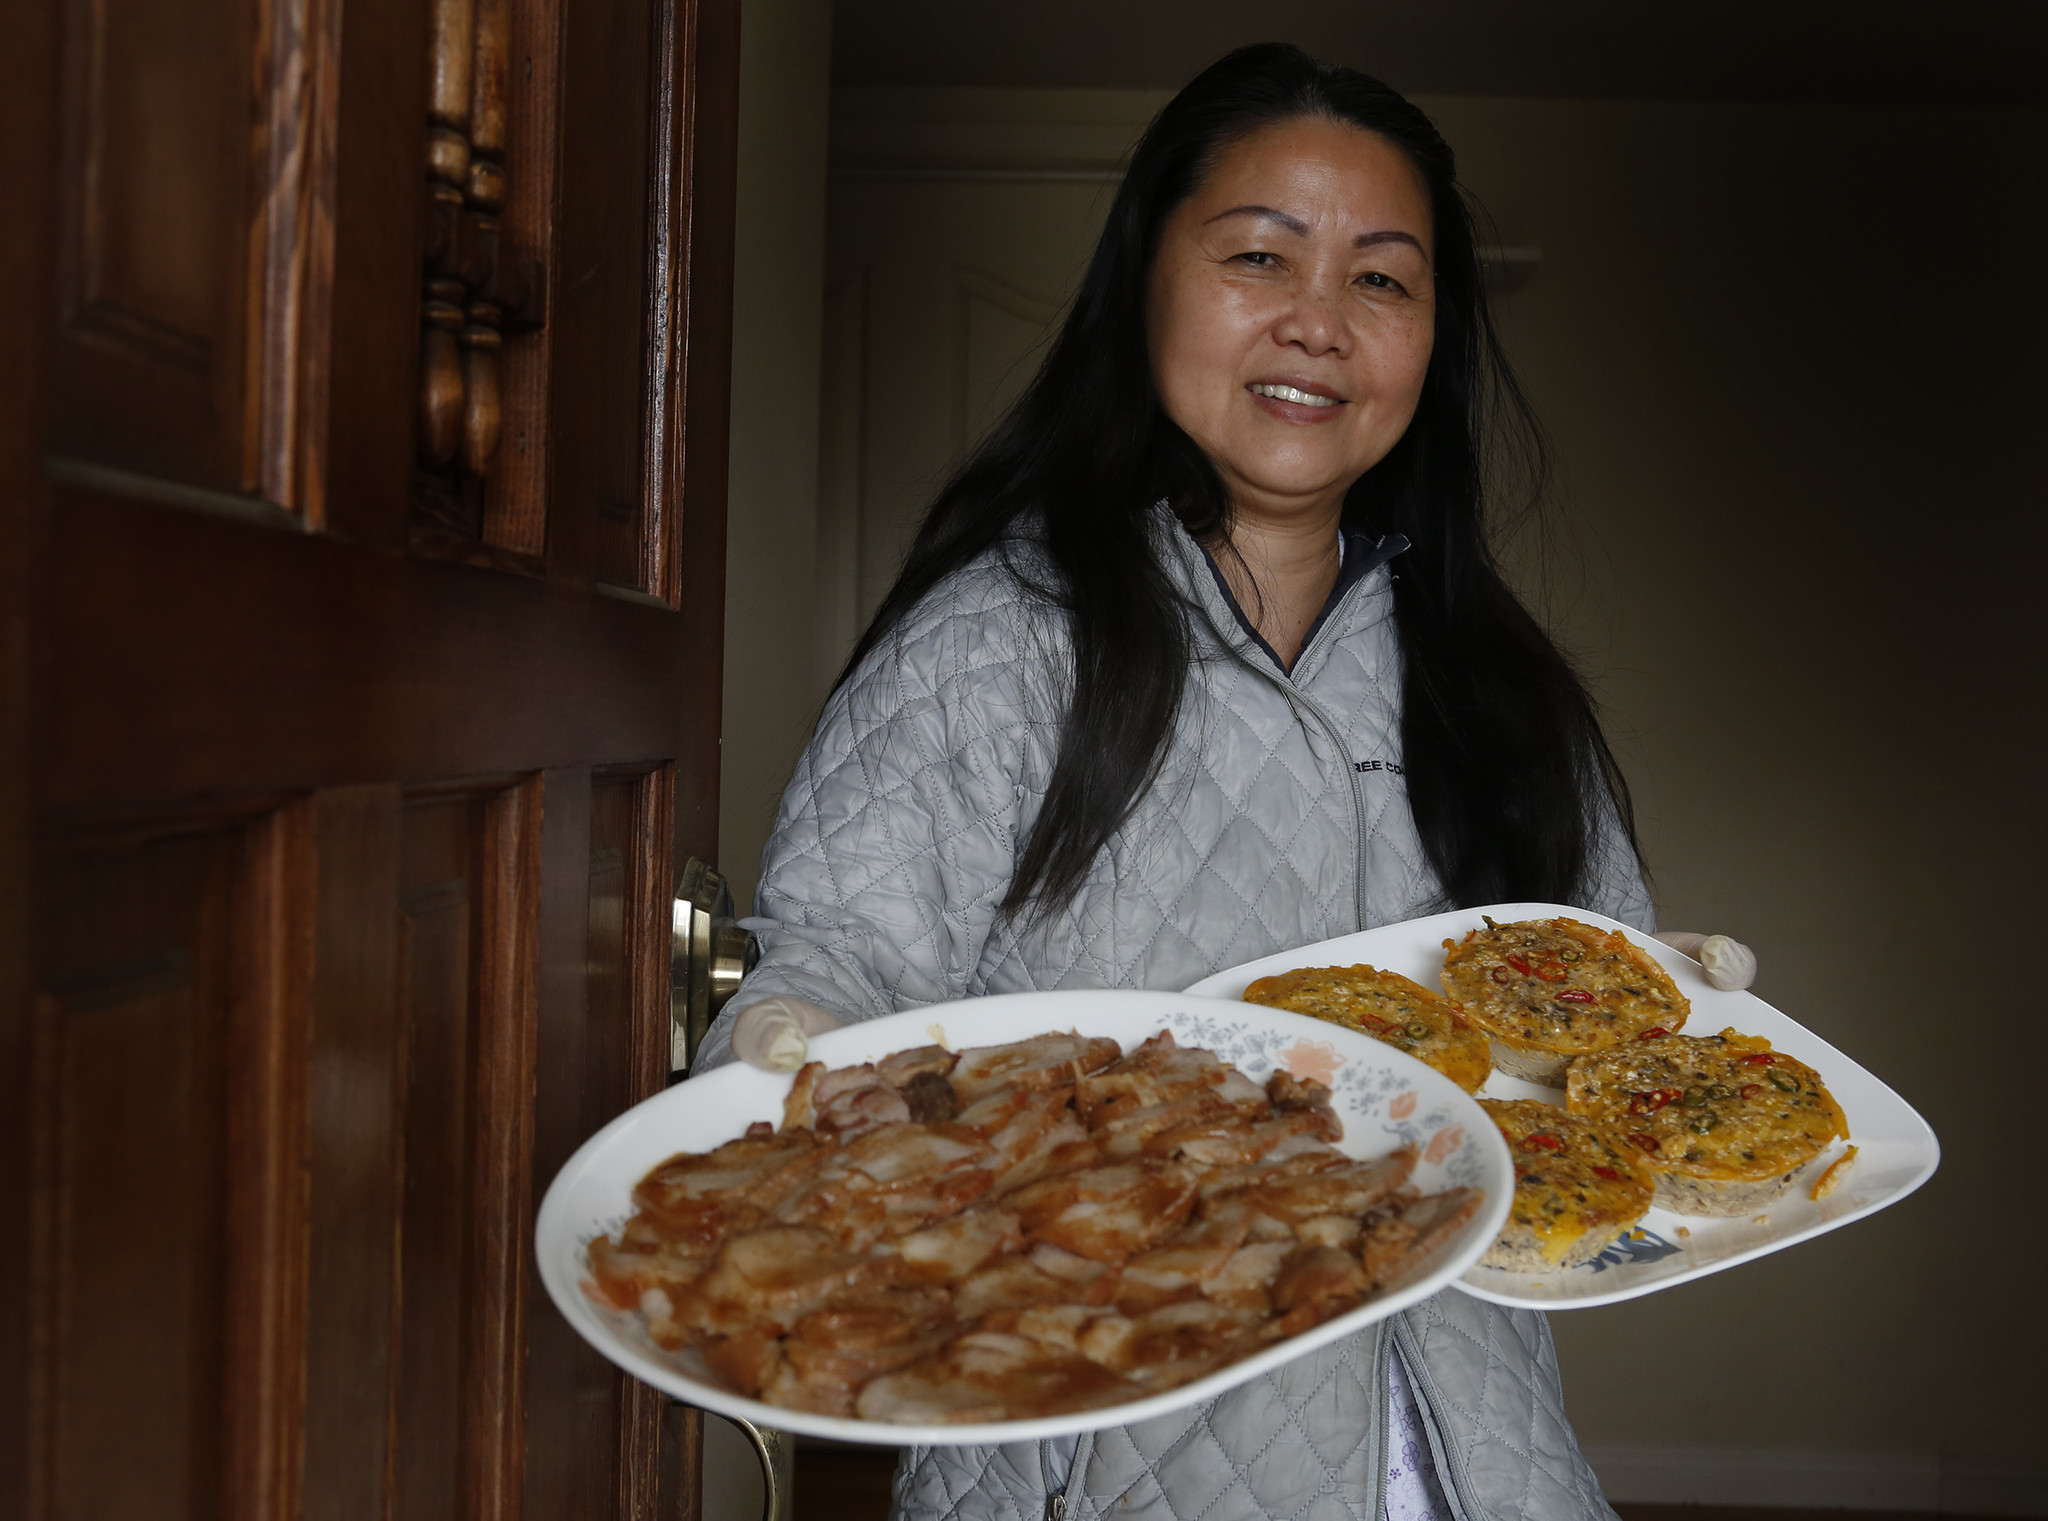 """After several hours of hard work, Hue Phan displays some of the finished dishes of barbecue pork and """"mam chung"""" that she will package for delivery."""